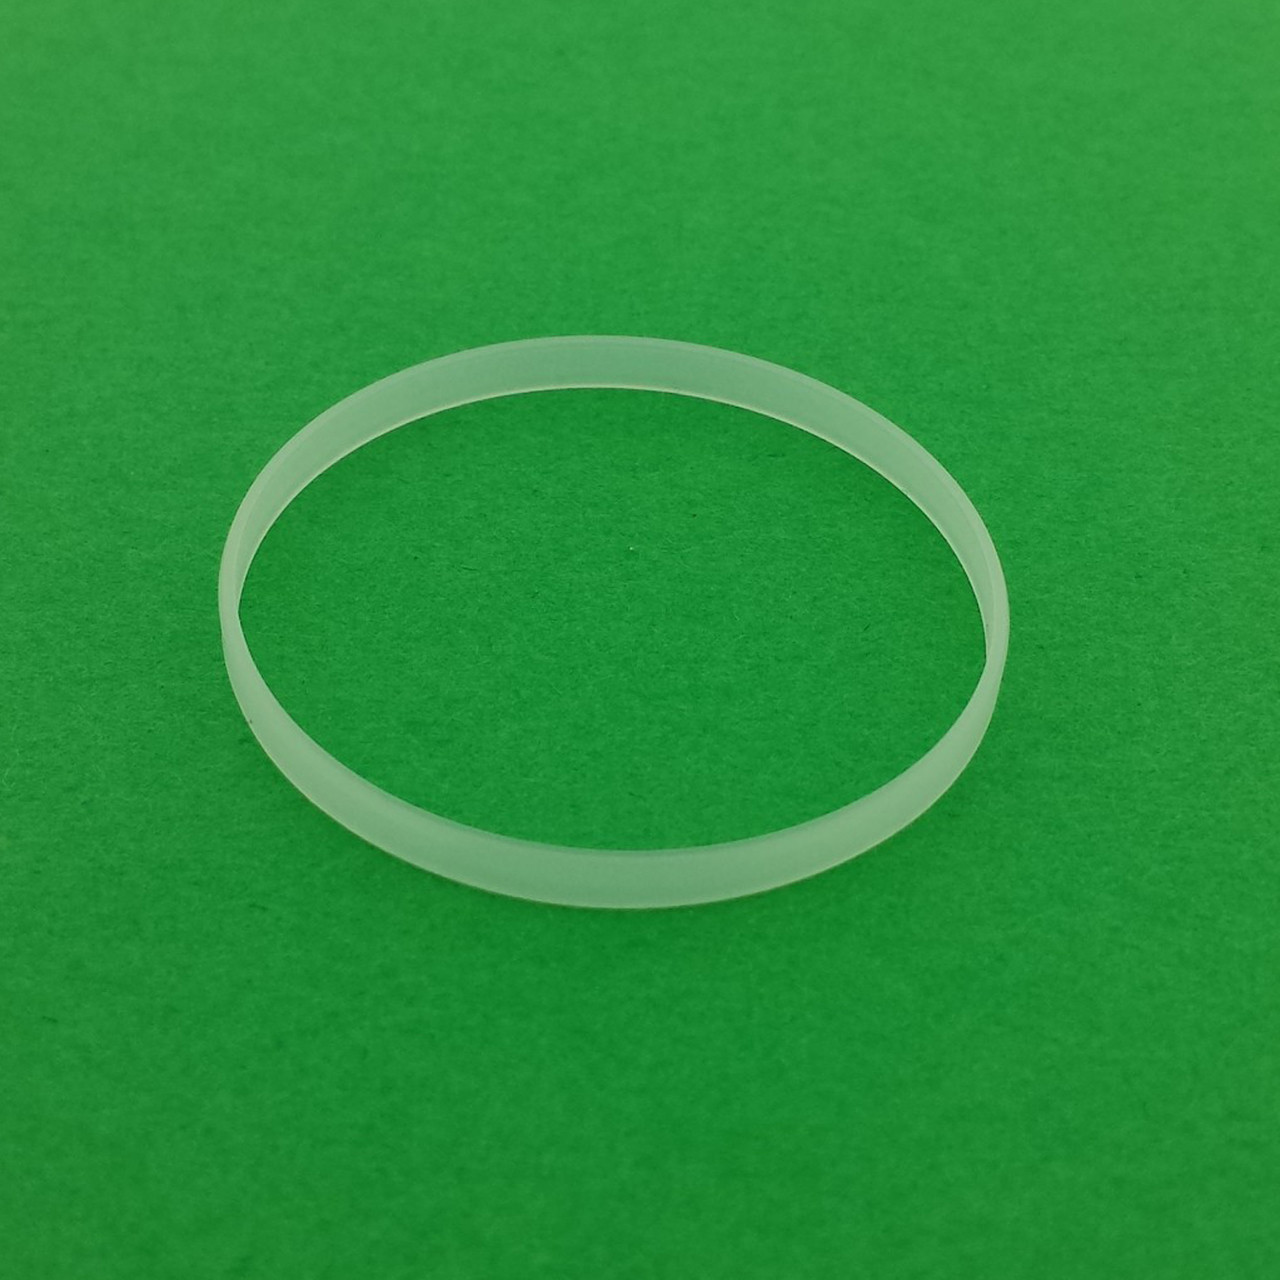 Gasket Fits Rolex Sapphire Crystal Fits GMT DateJust Daytona Submariner